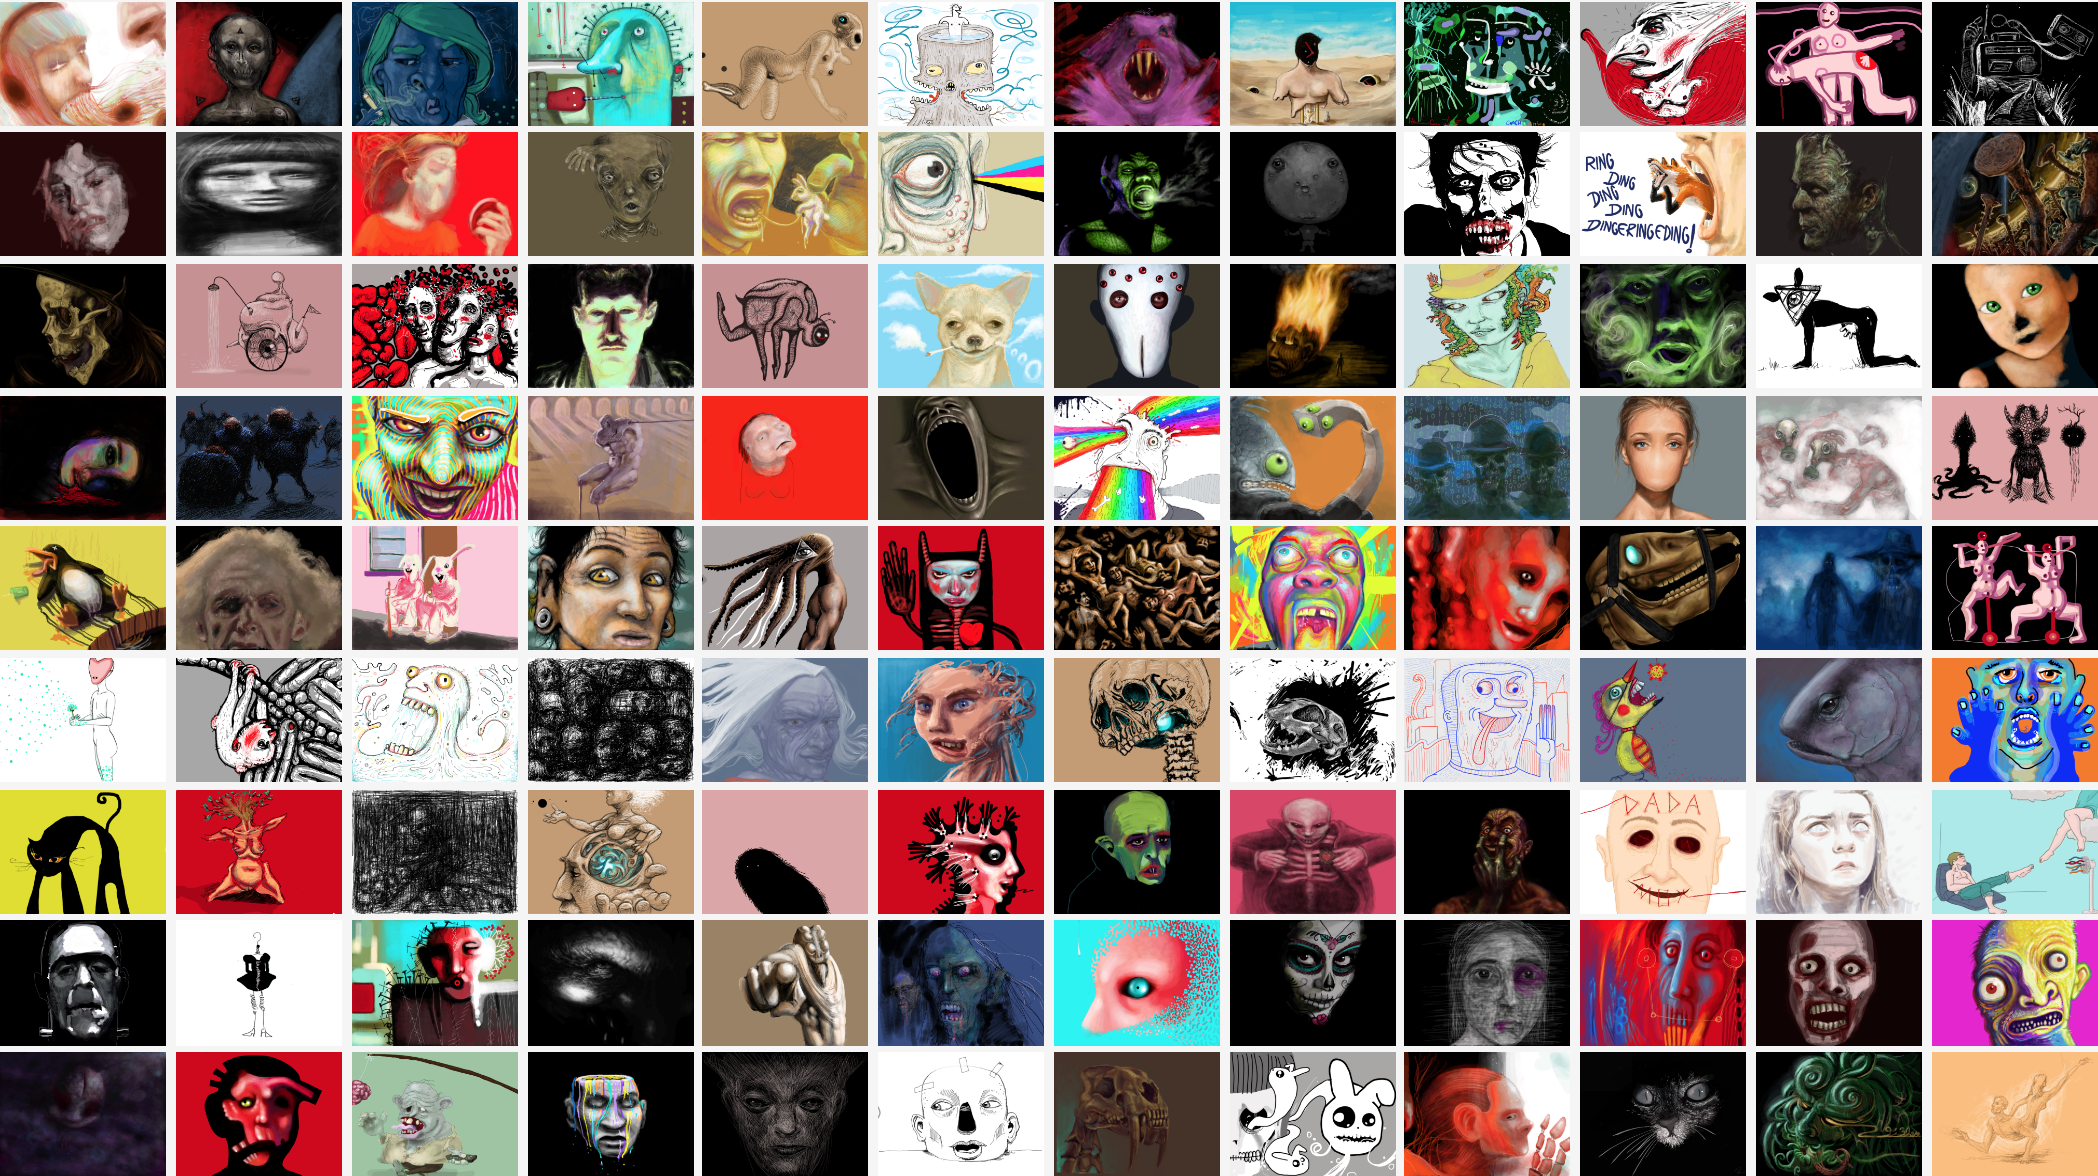 Current list of drawings available for sale on Dada for as little as $9